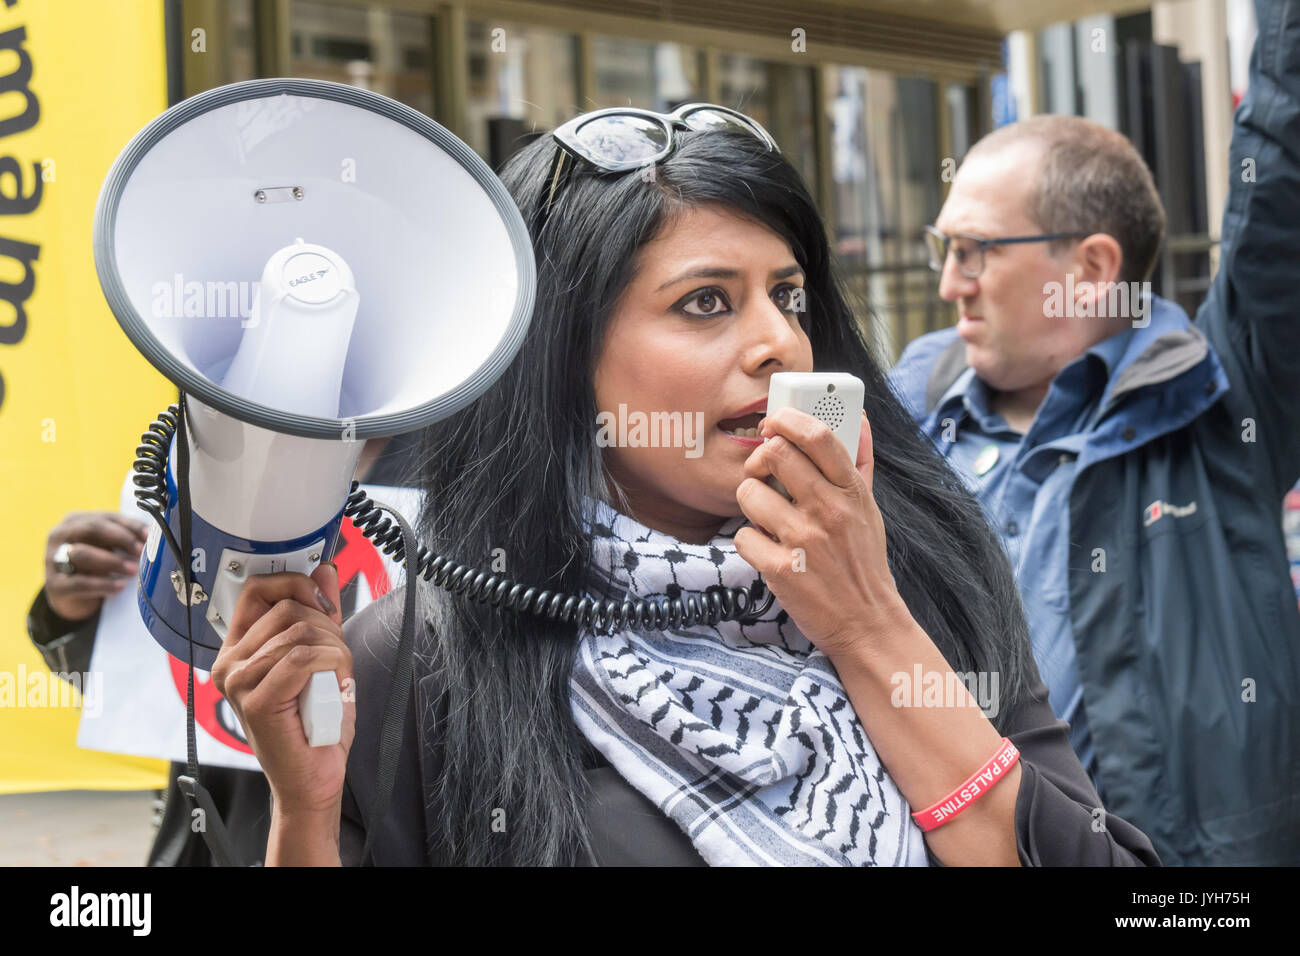 London, UK. 19th Aug, 2017. Shazia Khan whose father Mohammed Saleem was killed in a racist attack when walking home from a Birmingham mosque in 2013 speaks at the Stand Up to Trump protest outside the US Embassy. The organisation issupported by around 20 organisations including the CWU, NUT, Unite, UCU, CND, Stop the War, Campaign Against Climate Change, Muslim Association of Britain and others . They say Trump's bigoted rhetoric is sowing hate and division, encouraging extreme right-wing groups which is responsible for events such as those in Charlottesville - Stock Image